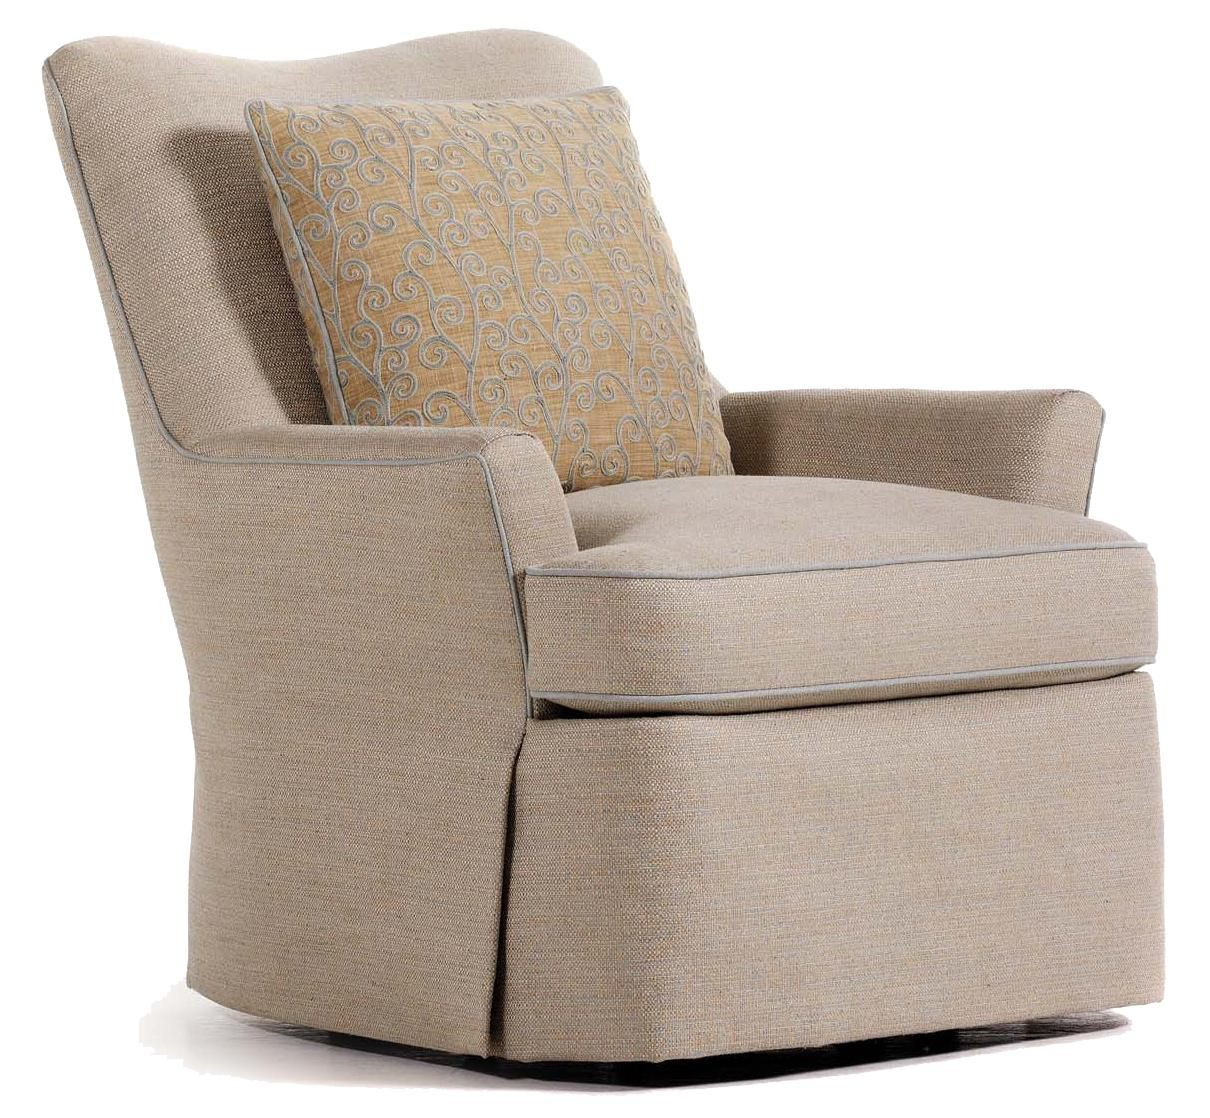 Durban Swivel Rockerjessica Charles | Decorating In 2018 Inside Katrina Beige Swivel Glider Chairs (Image 7 of 20)